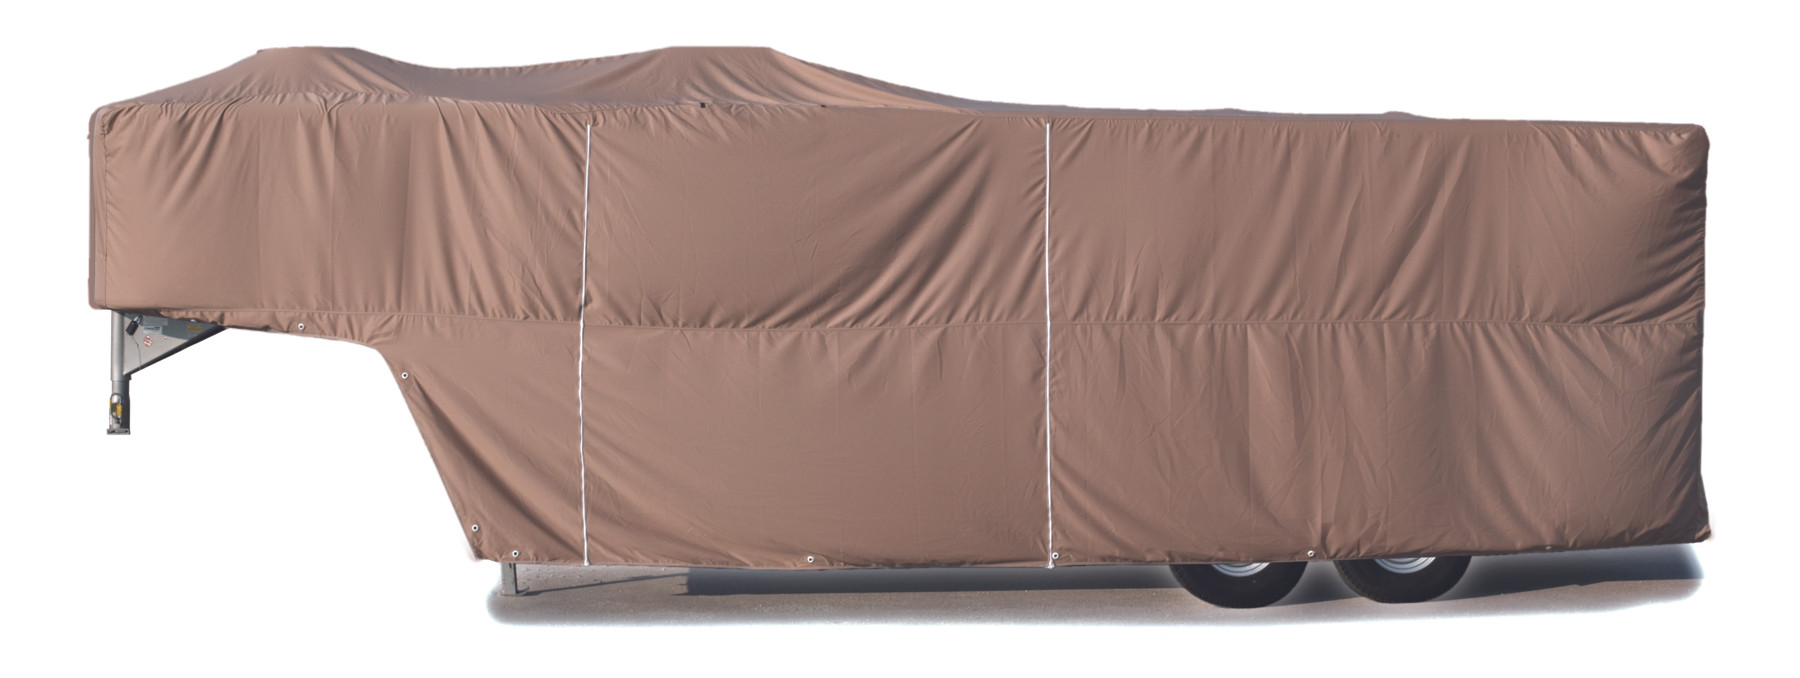 Horse Trailer Covers